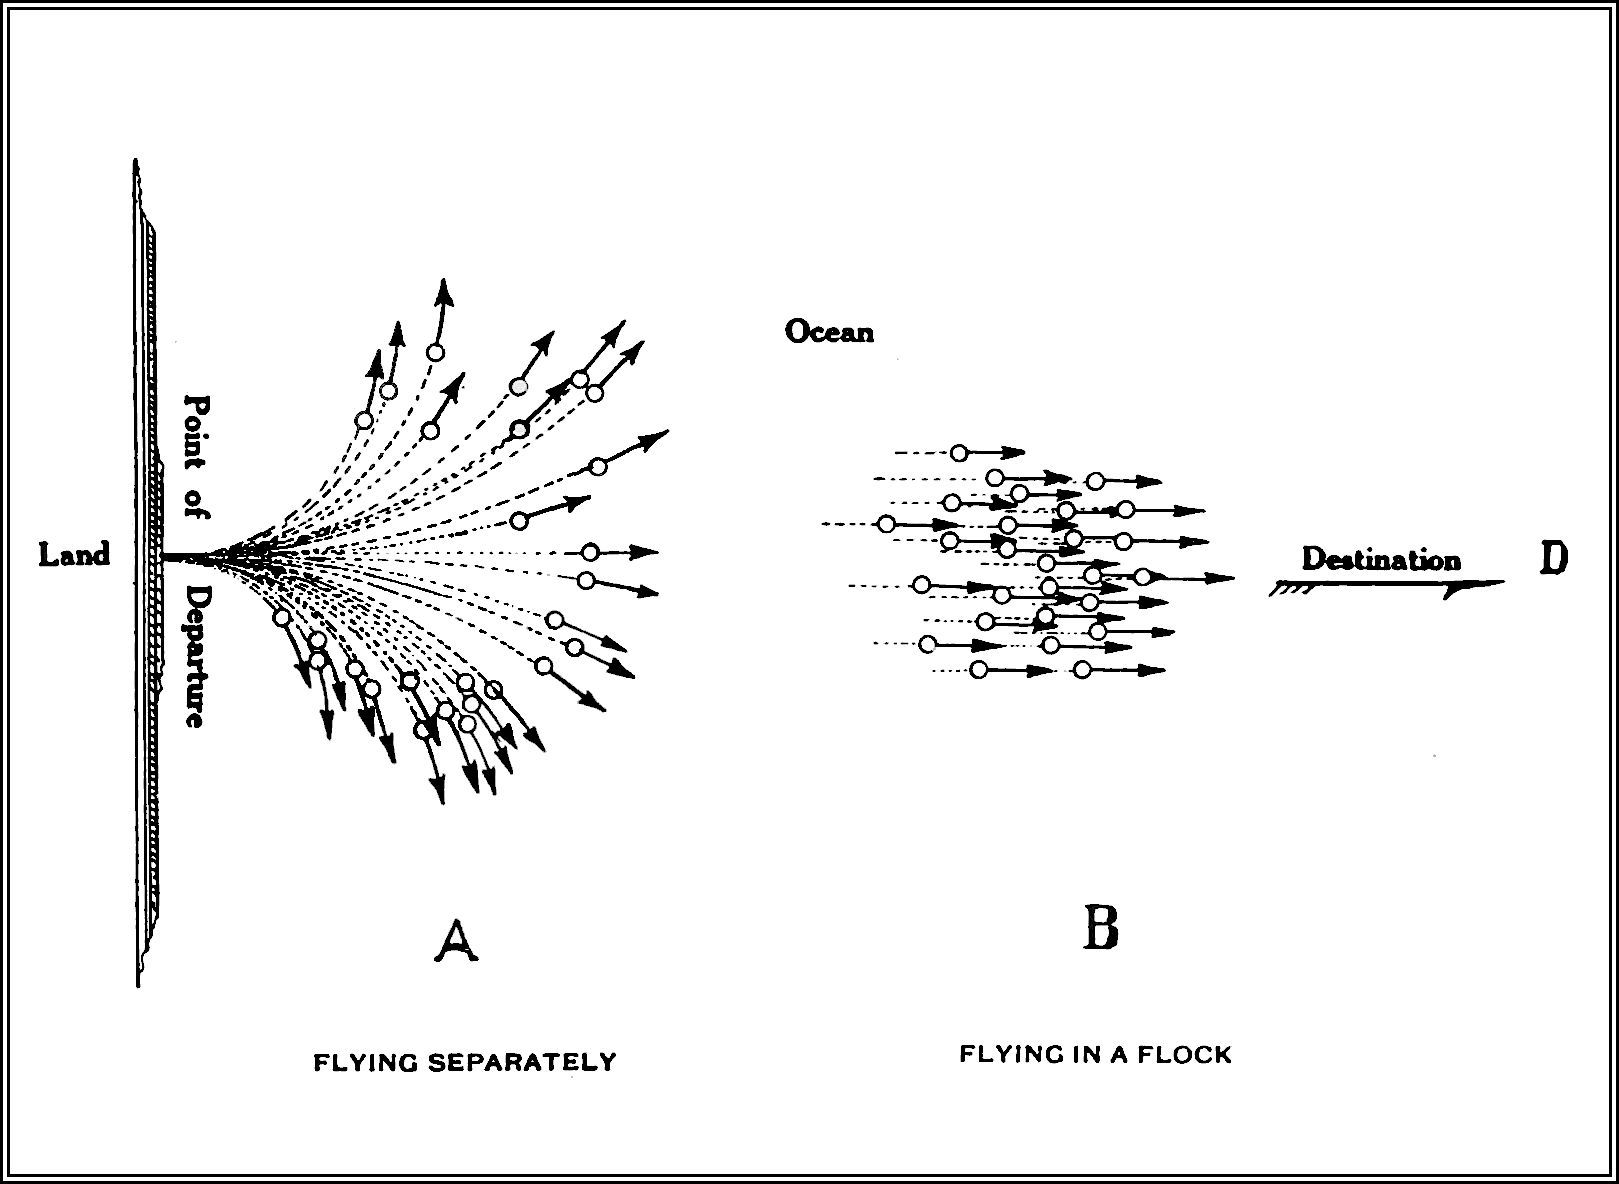 PSM V84 D215 Flocking habit of migratory birds fig2.jpg